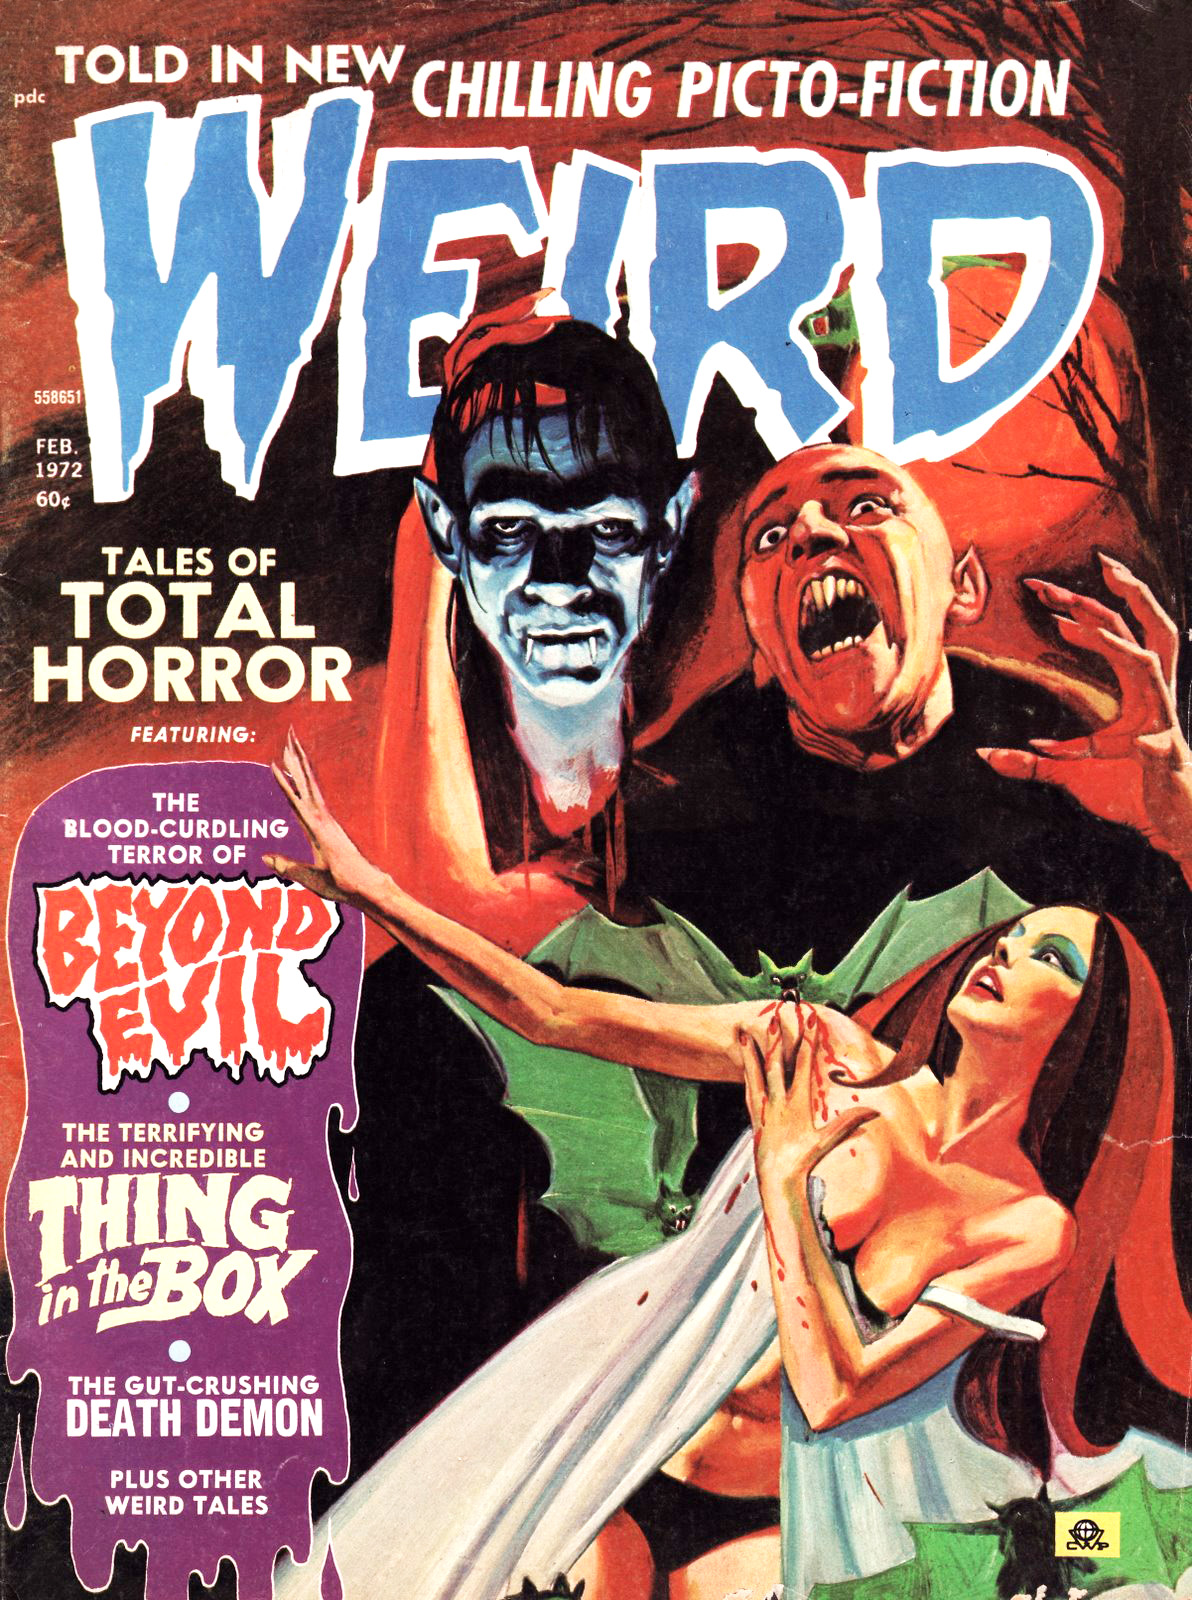 Weird Vol. 06 #1 (Eerie Publications, 1972)